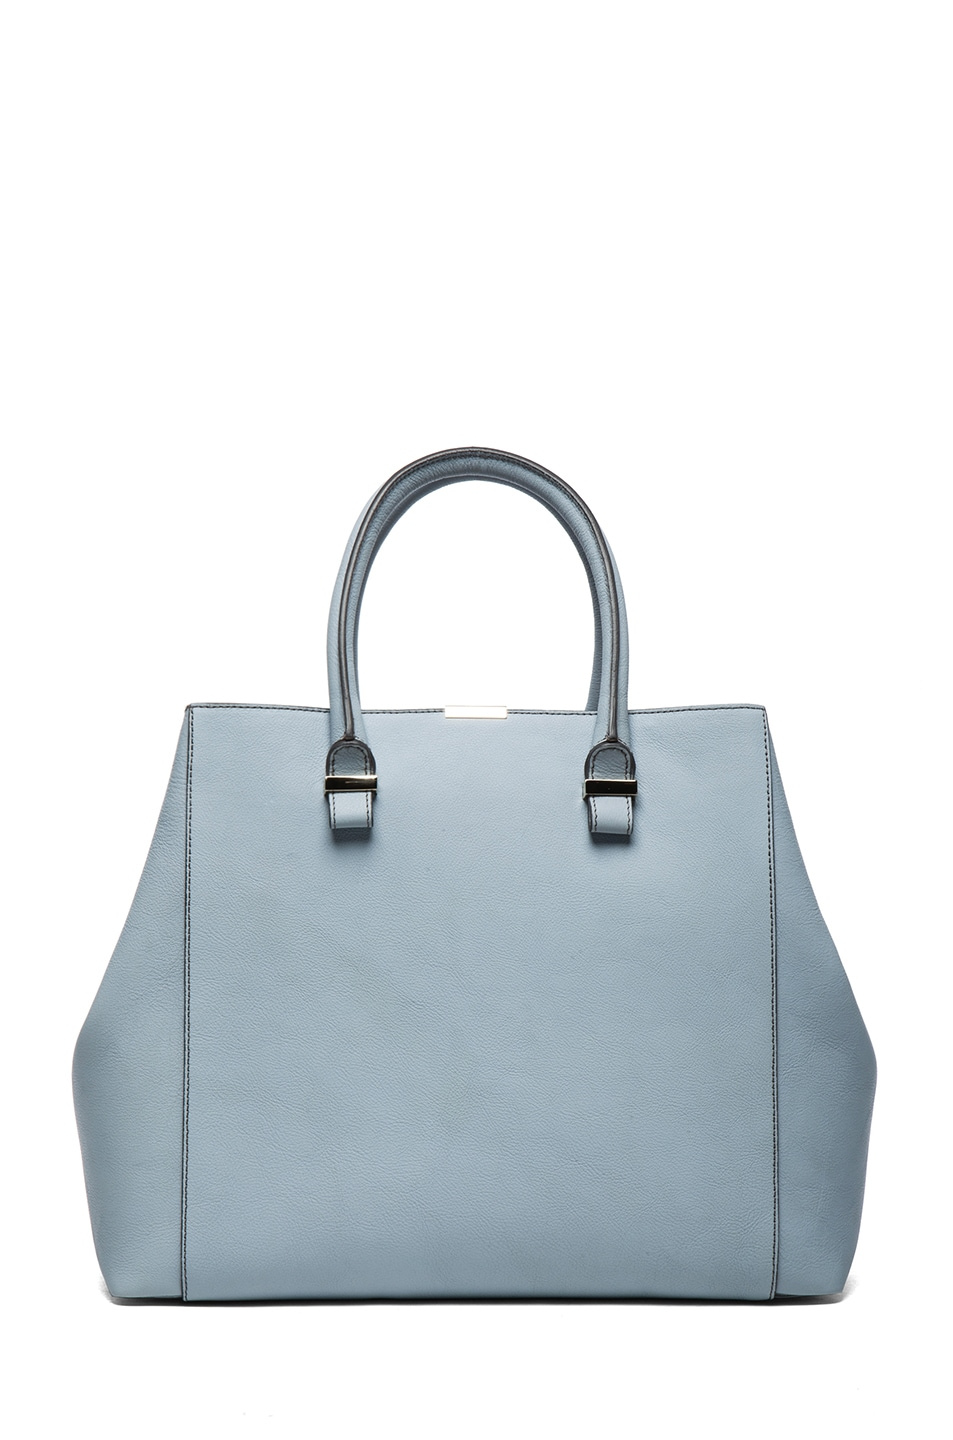 Image 1 of Victoria Beckham Liberty Bag in Rainy Day & Powder